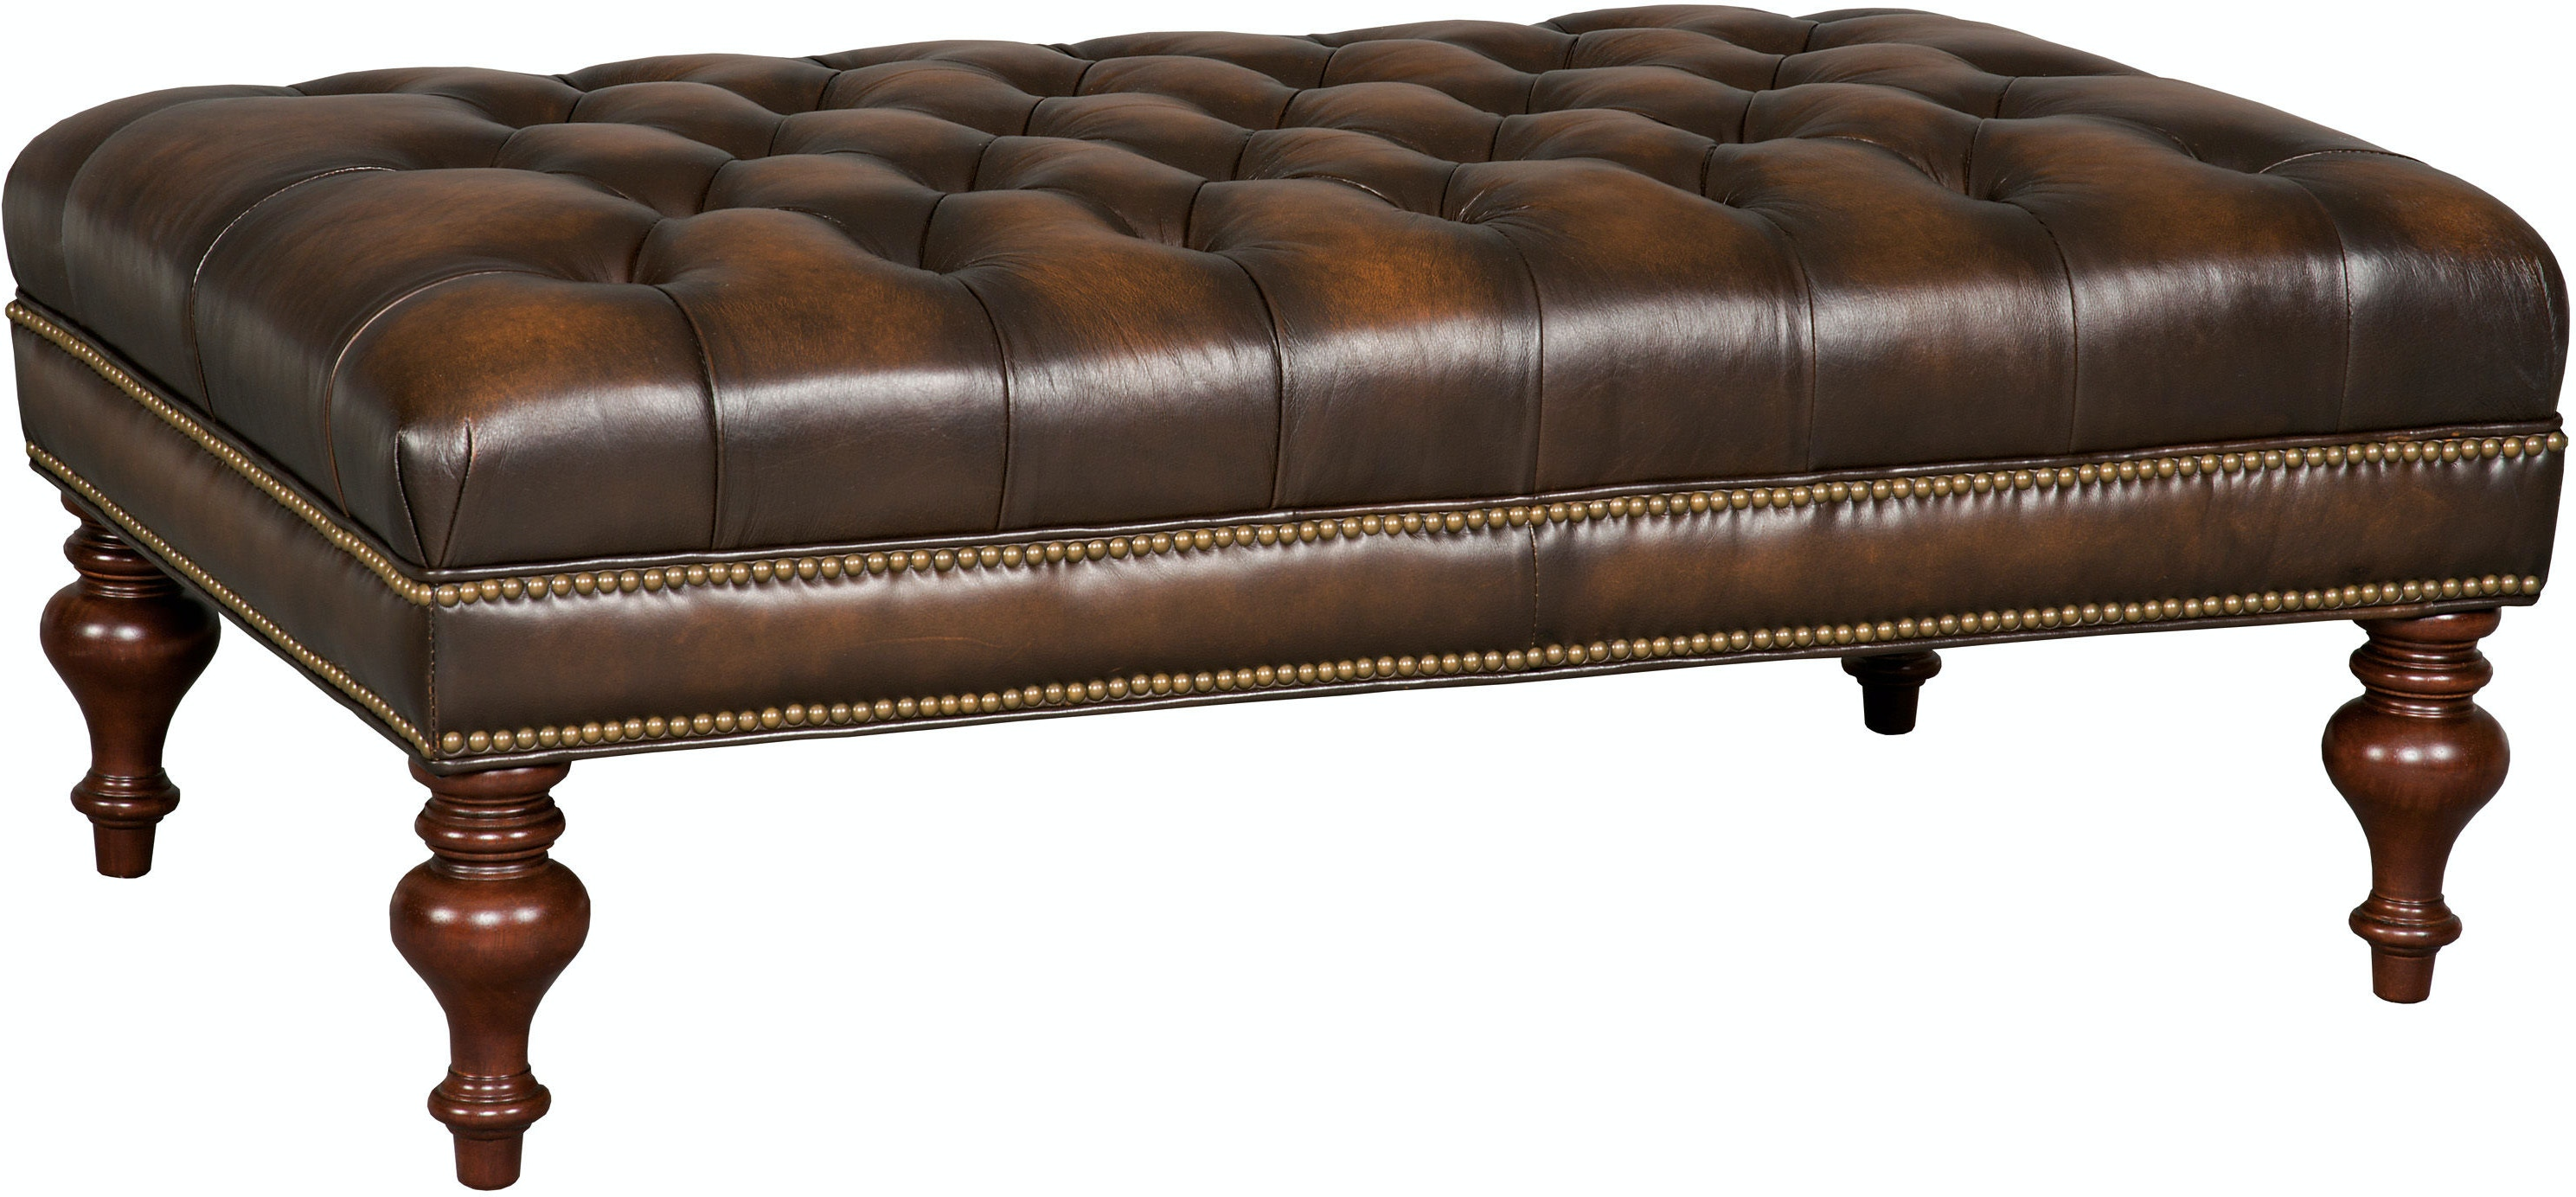 Hooker Furniture Living Room Kingley Cocktail Ottoman Co385 085